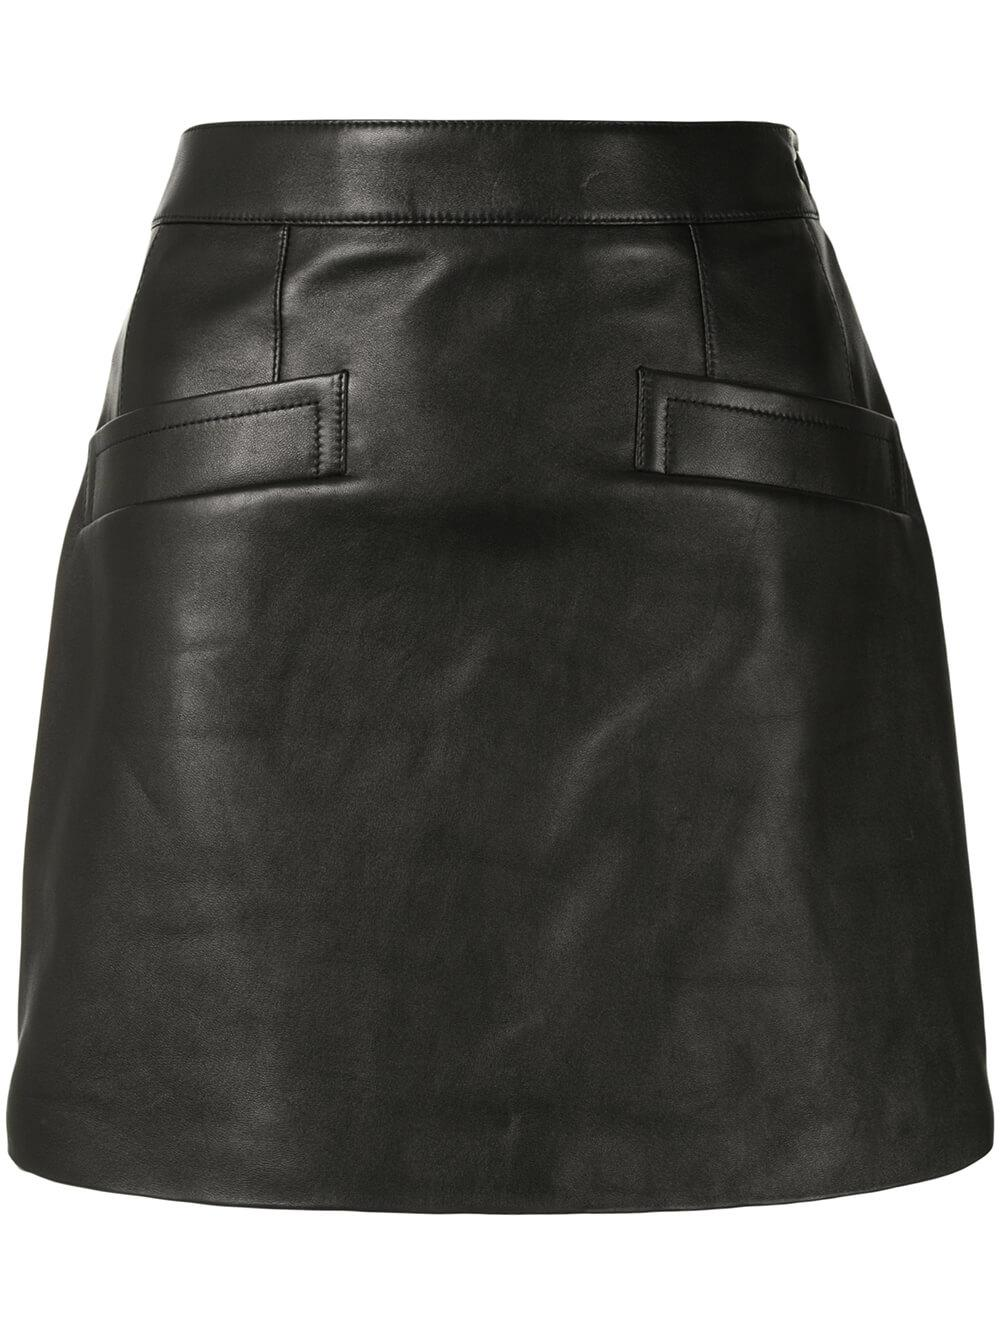 Leather Skirt Item # 611752YC2ZZ